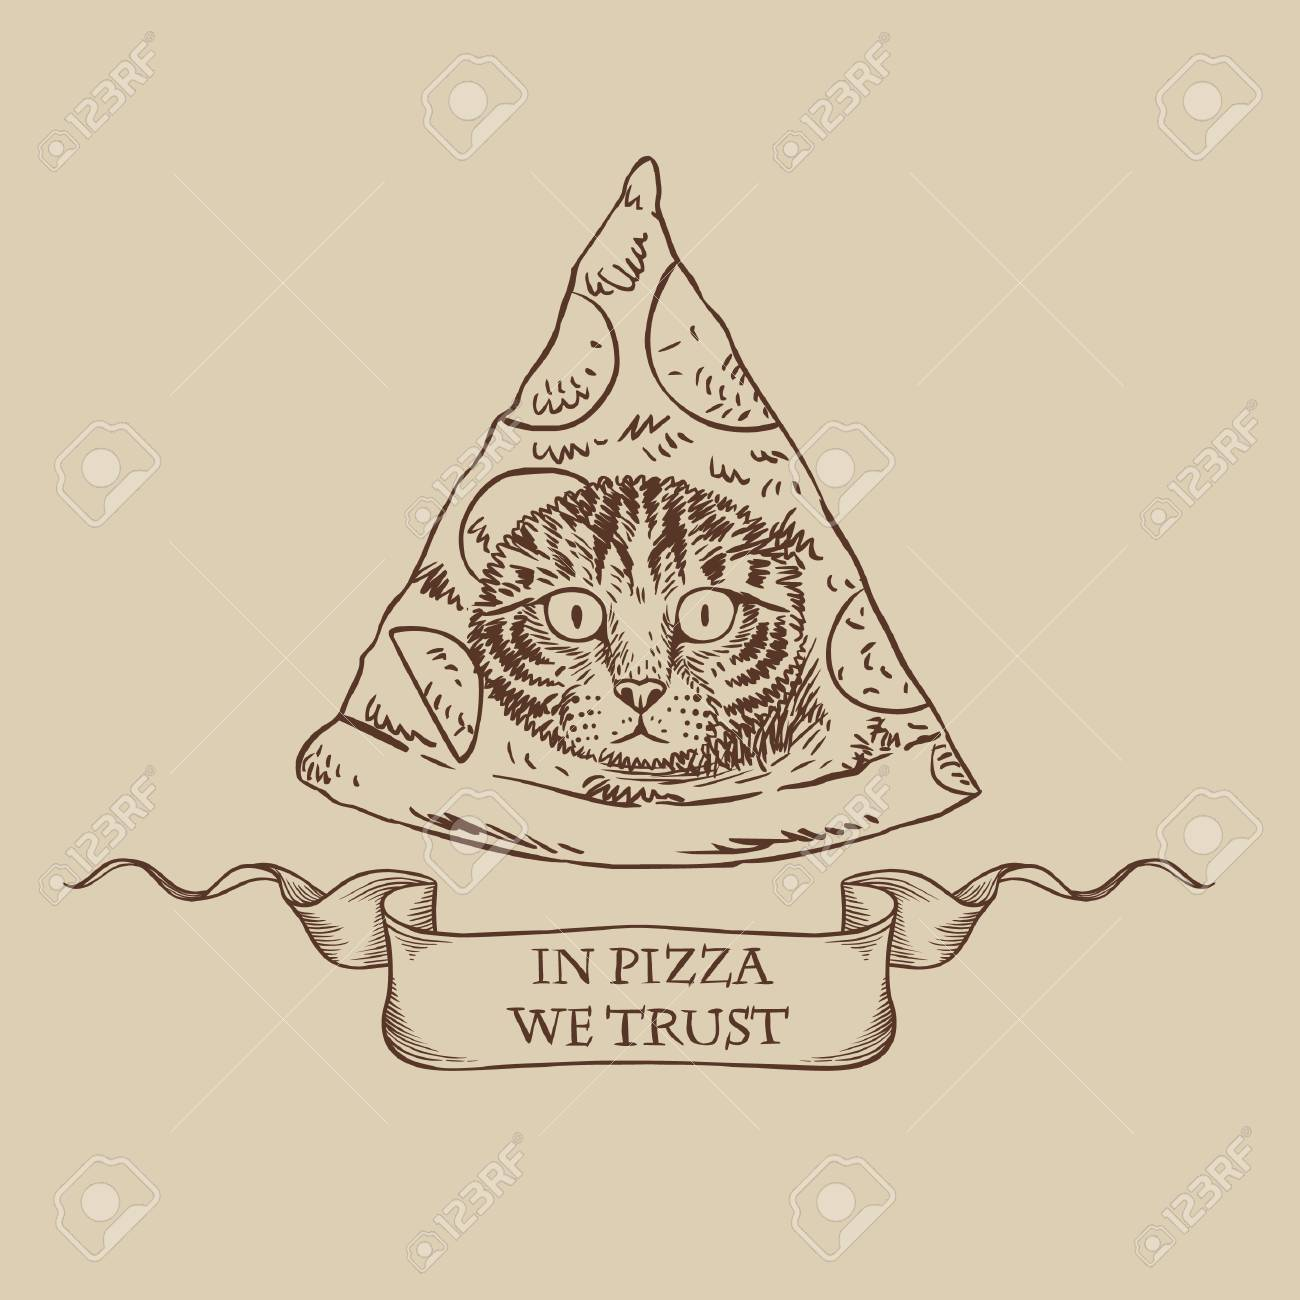 Funny Masonic Symbol With Pizza And Cat Vector Template For